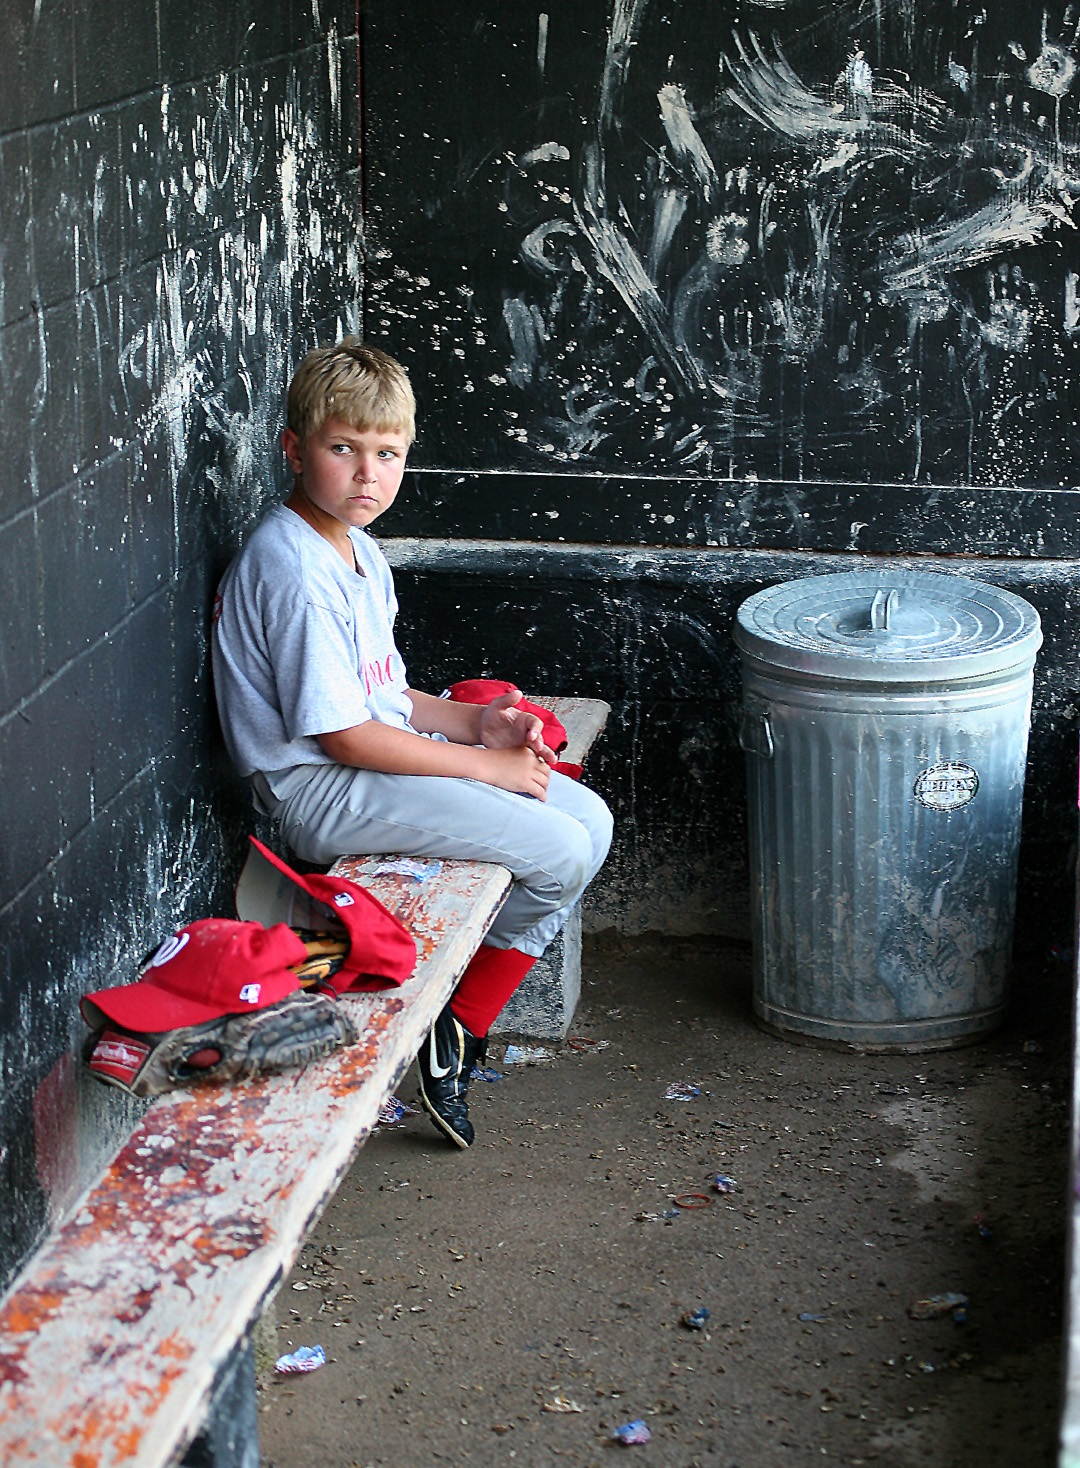 """""""Put me in, coach!"""" The words from the John Fogarty songs Centerfield always come to mind when I see this photo of a young player waiting his turn to get in the game. Left in the dugout while his team battles for a win, this kid waited patiently and cheered his teammates on, in spite of his not playing at that moment."""